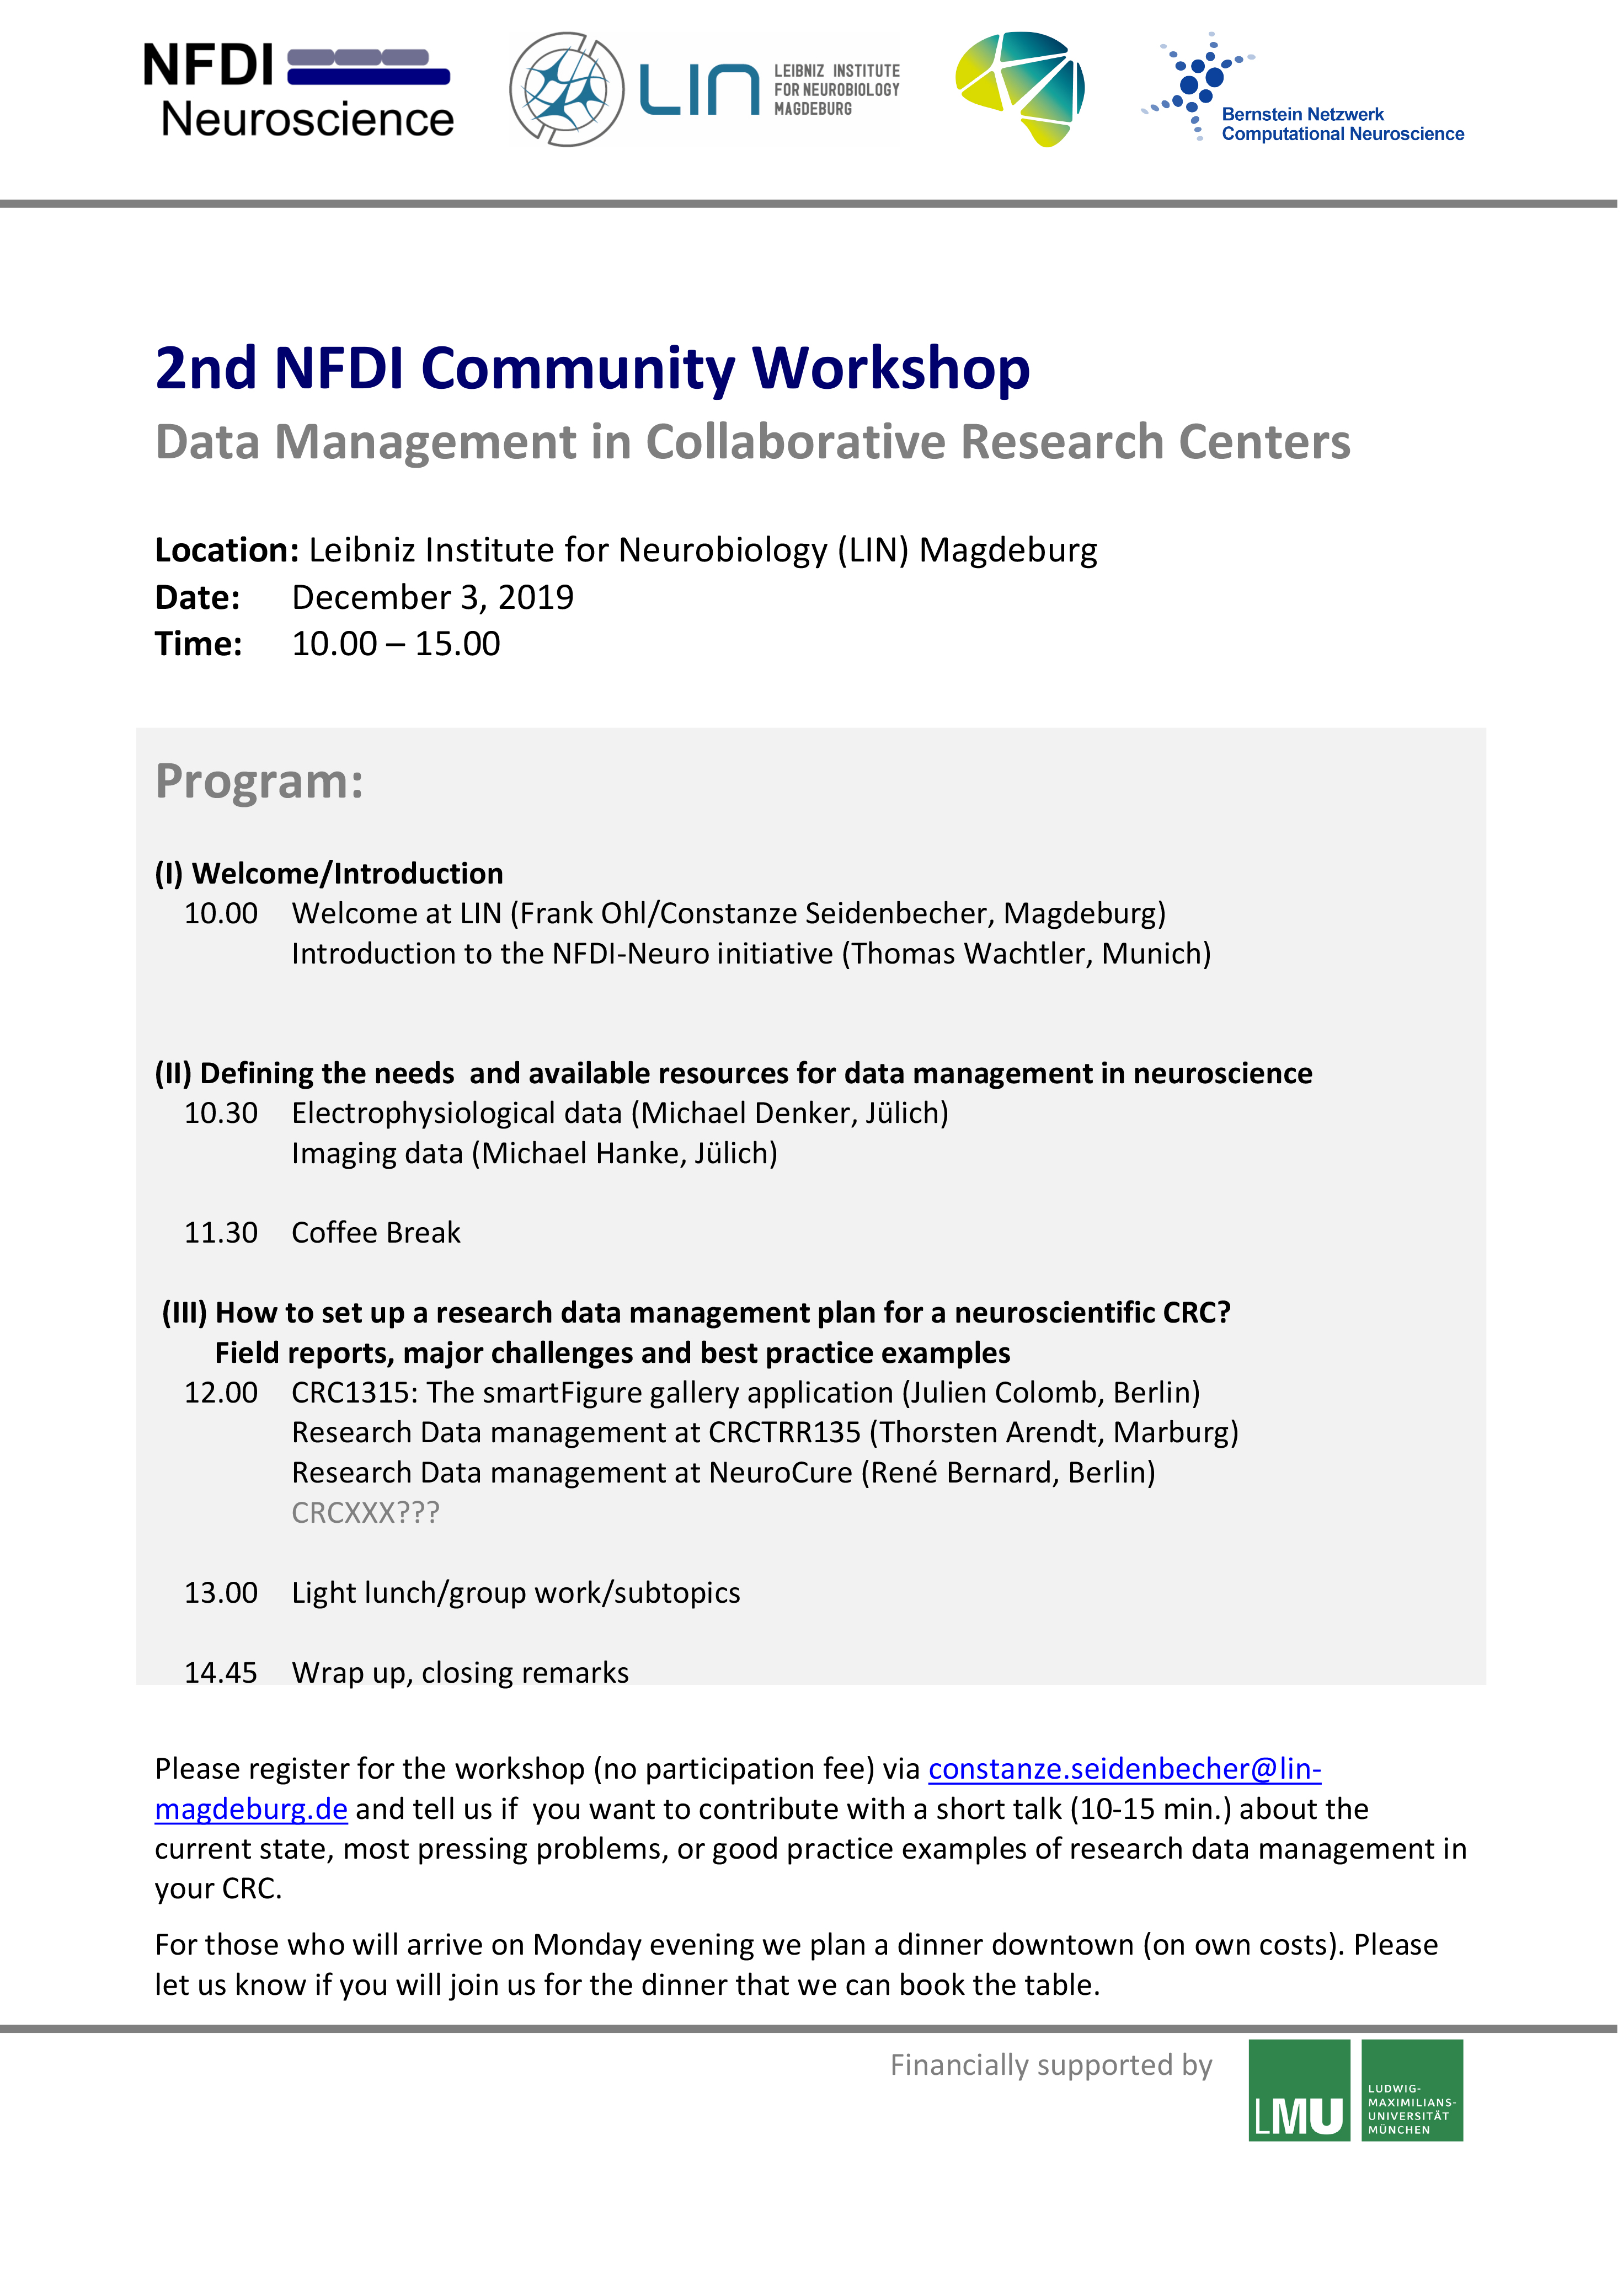 2nd NFDI Community Workshop (Data Management in CRCs) @ Ebbinghaus Lecture Hall, Leibniz Institute for Neurobiology